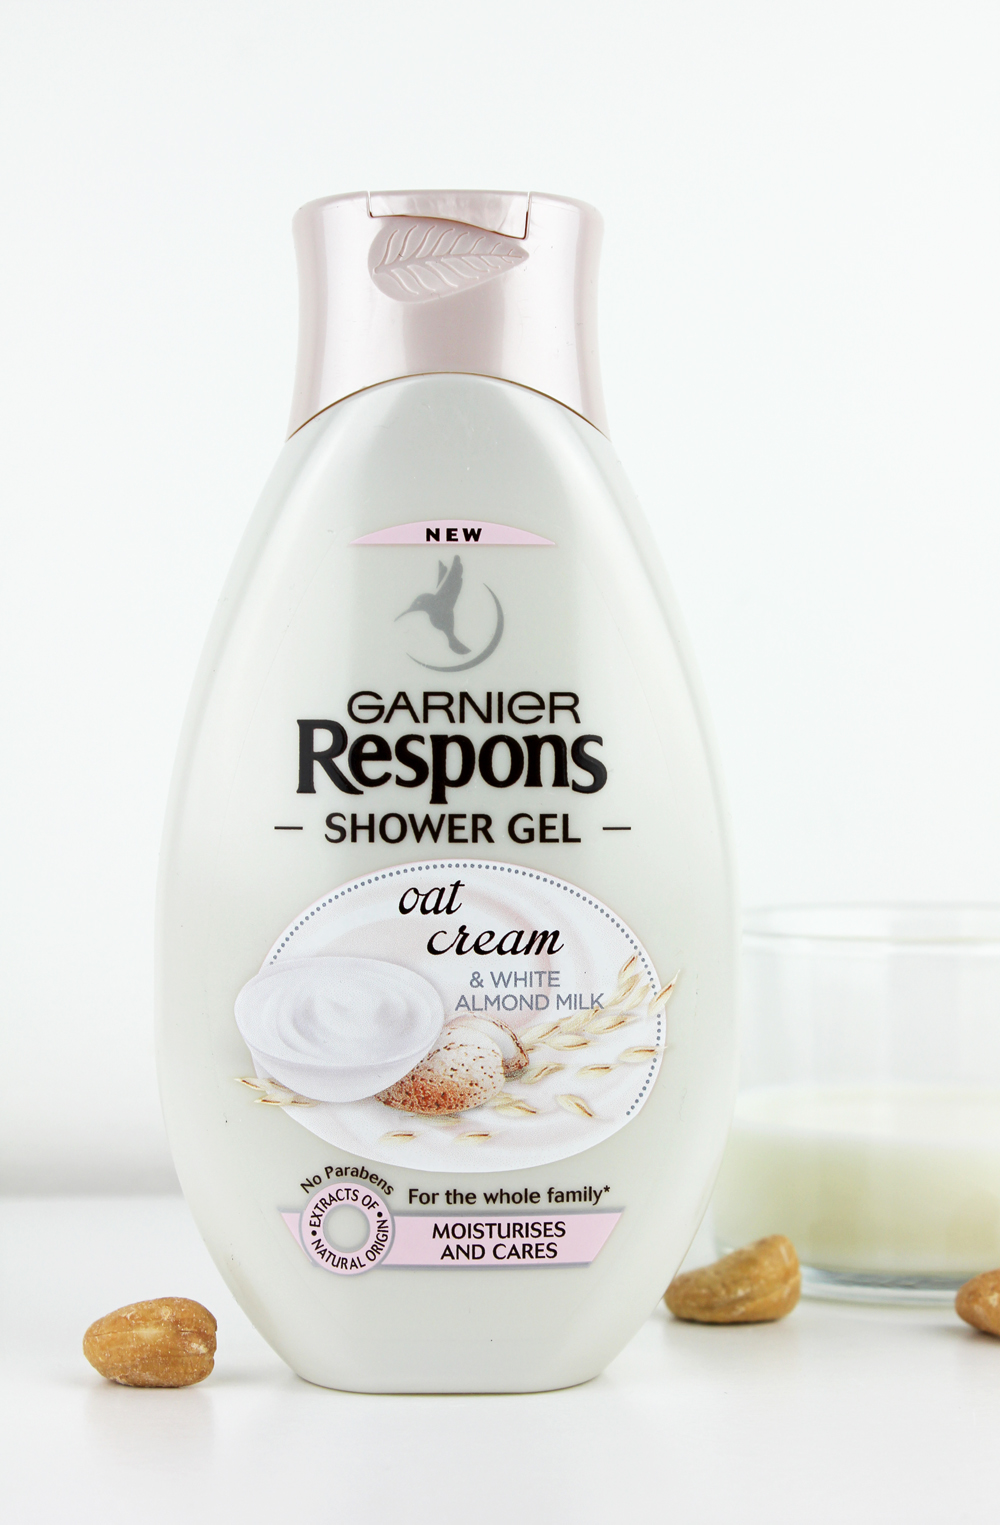 Garnier Respons Shower Gel Oat Cream & White Almond Milk